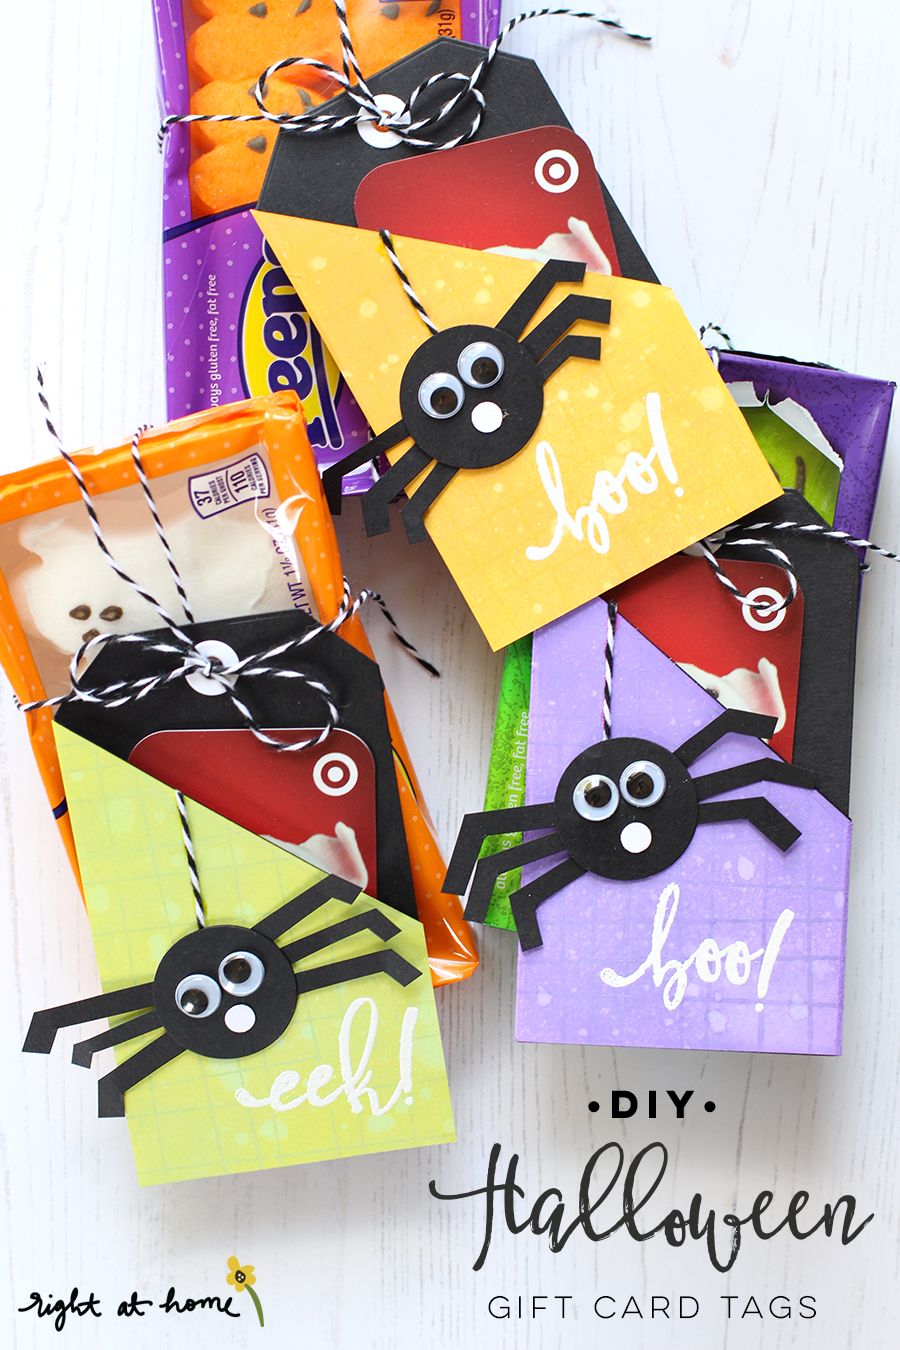 Right-at-Home-DIY-Halloween-Gift-Card-Tags-#1.png